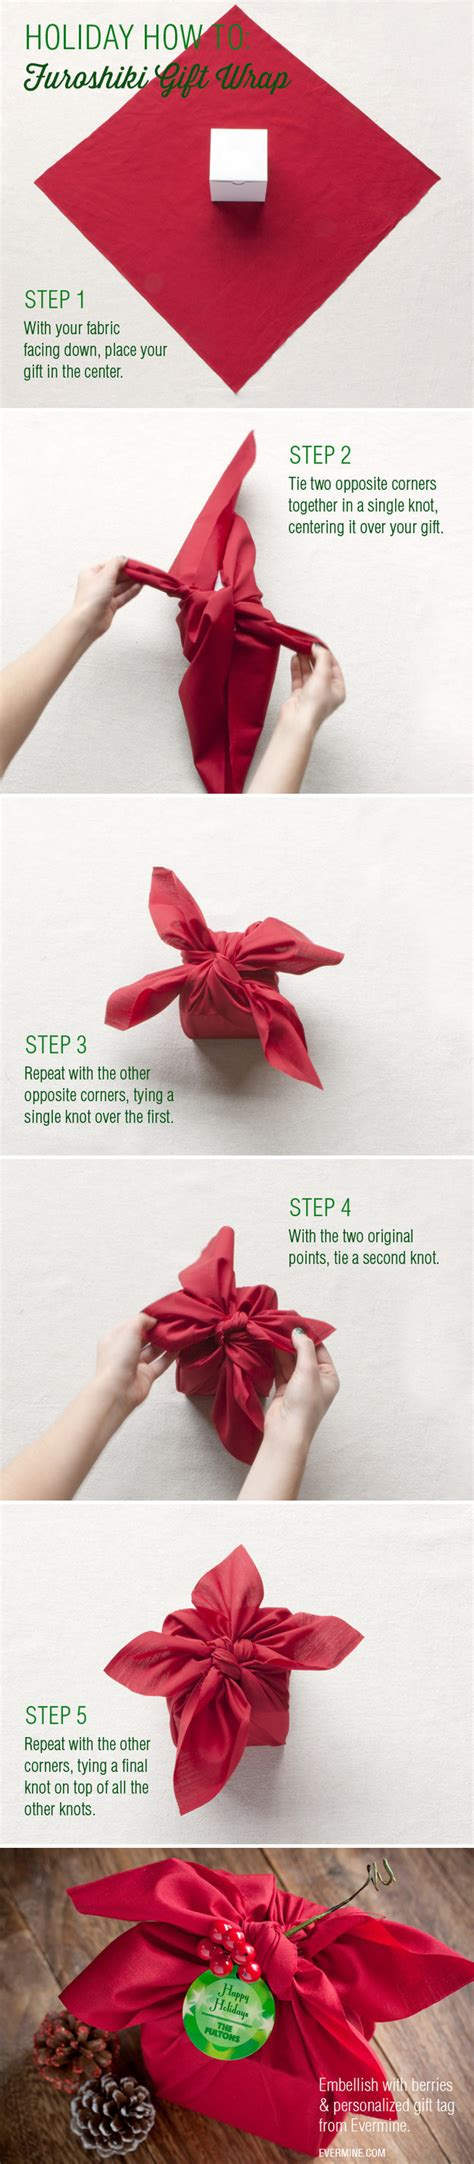 creative ways to wrap christmas gifts 25 adorable and creative diy gift wrap ideas